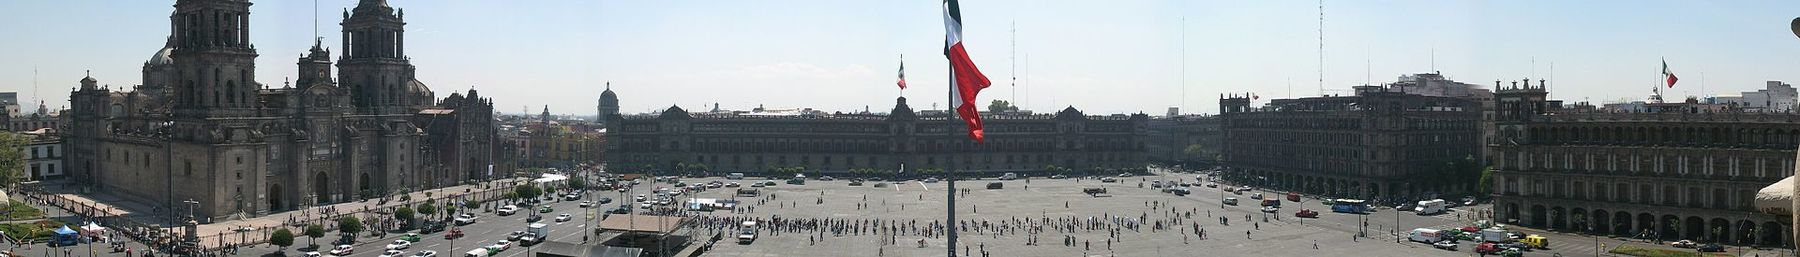 Zocalo Panorama seen from rooftop restaurant (cropped).jpg